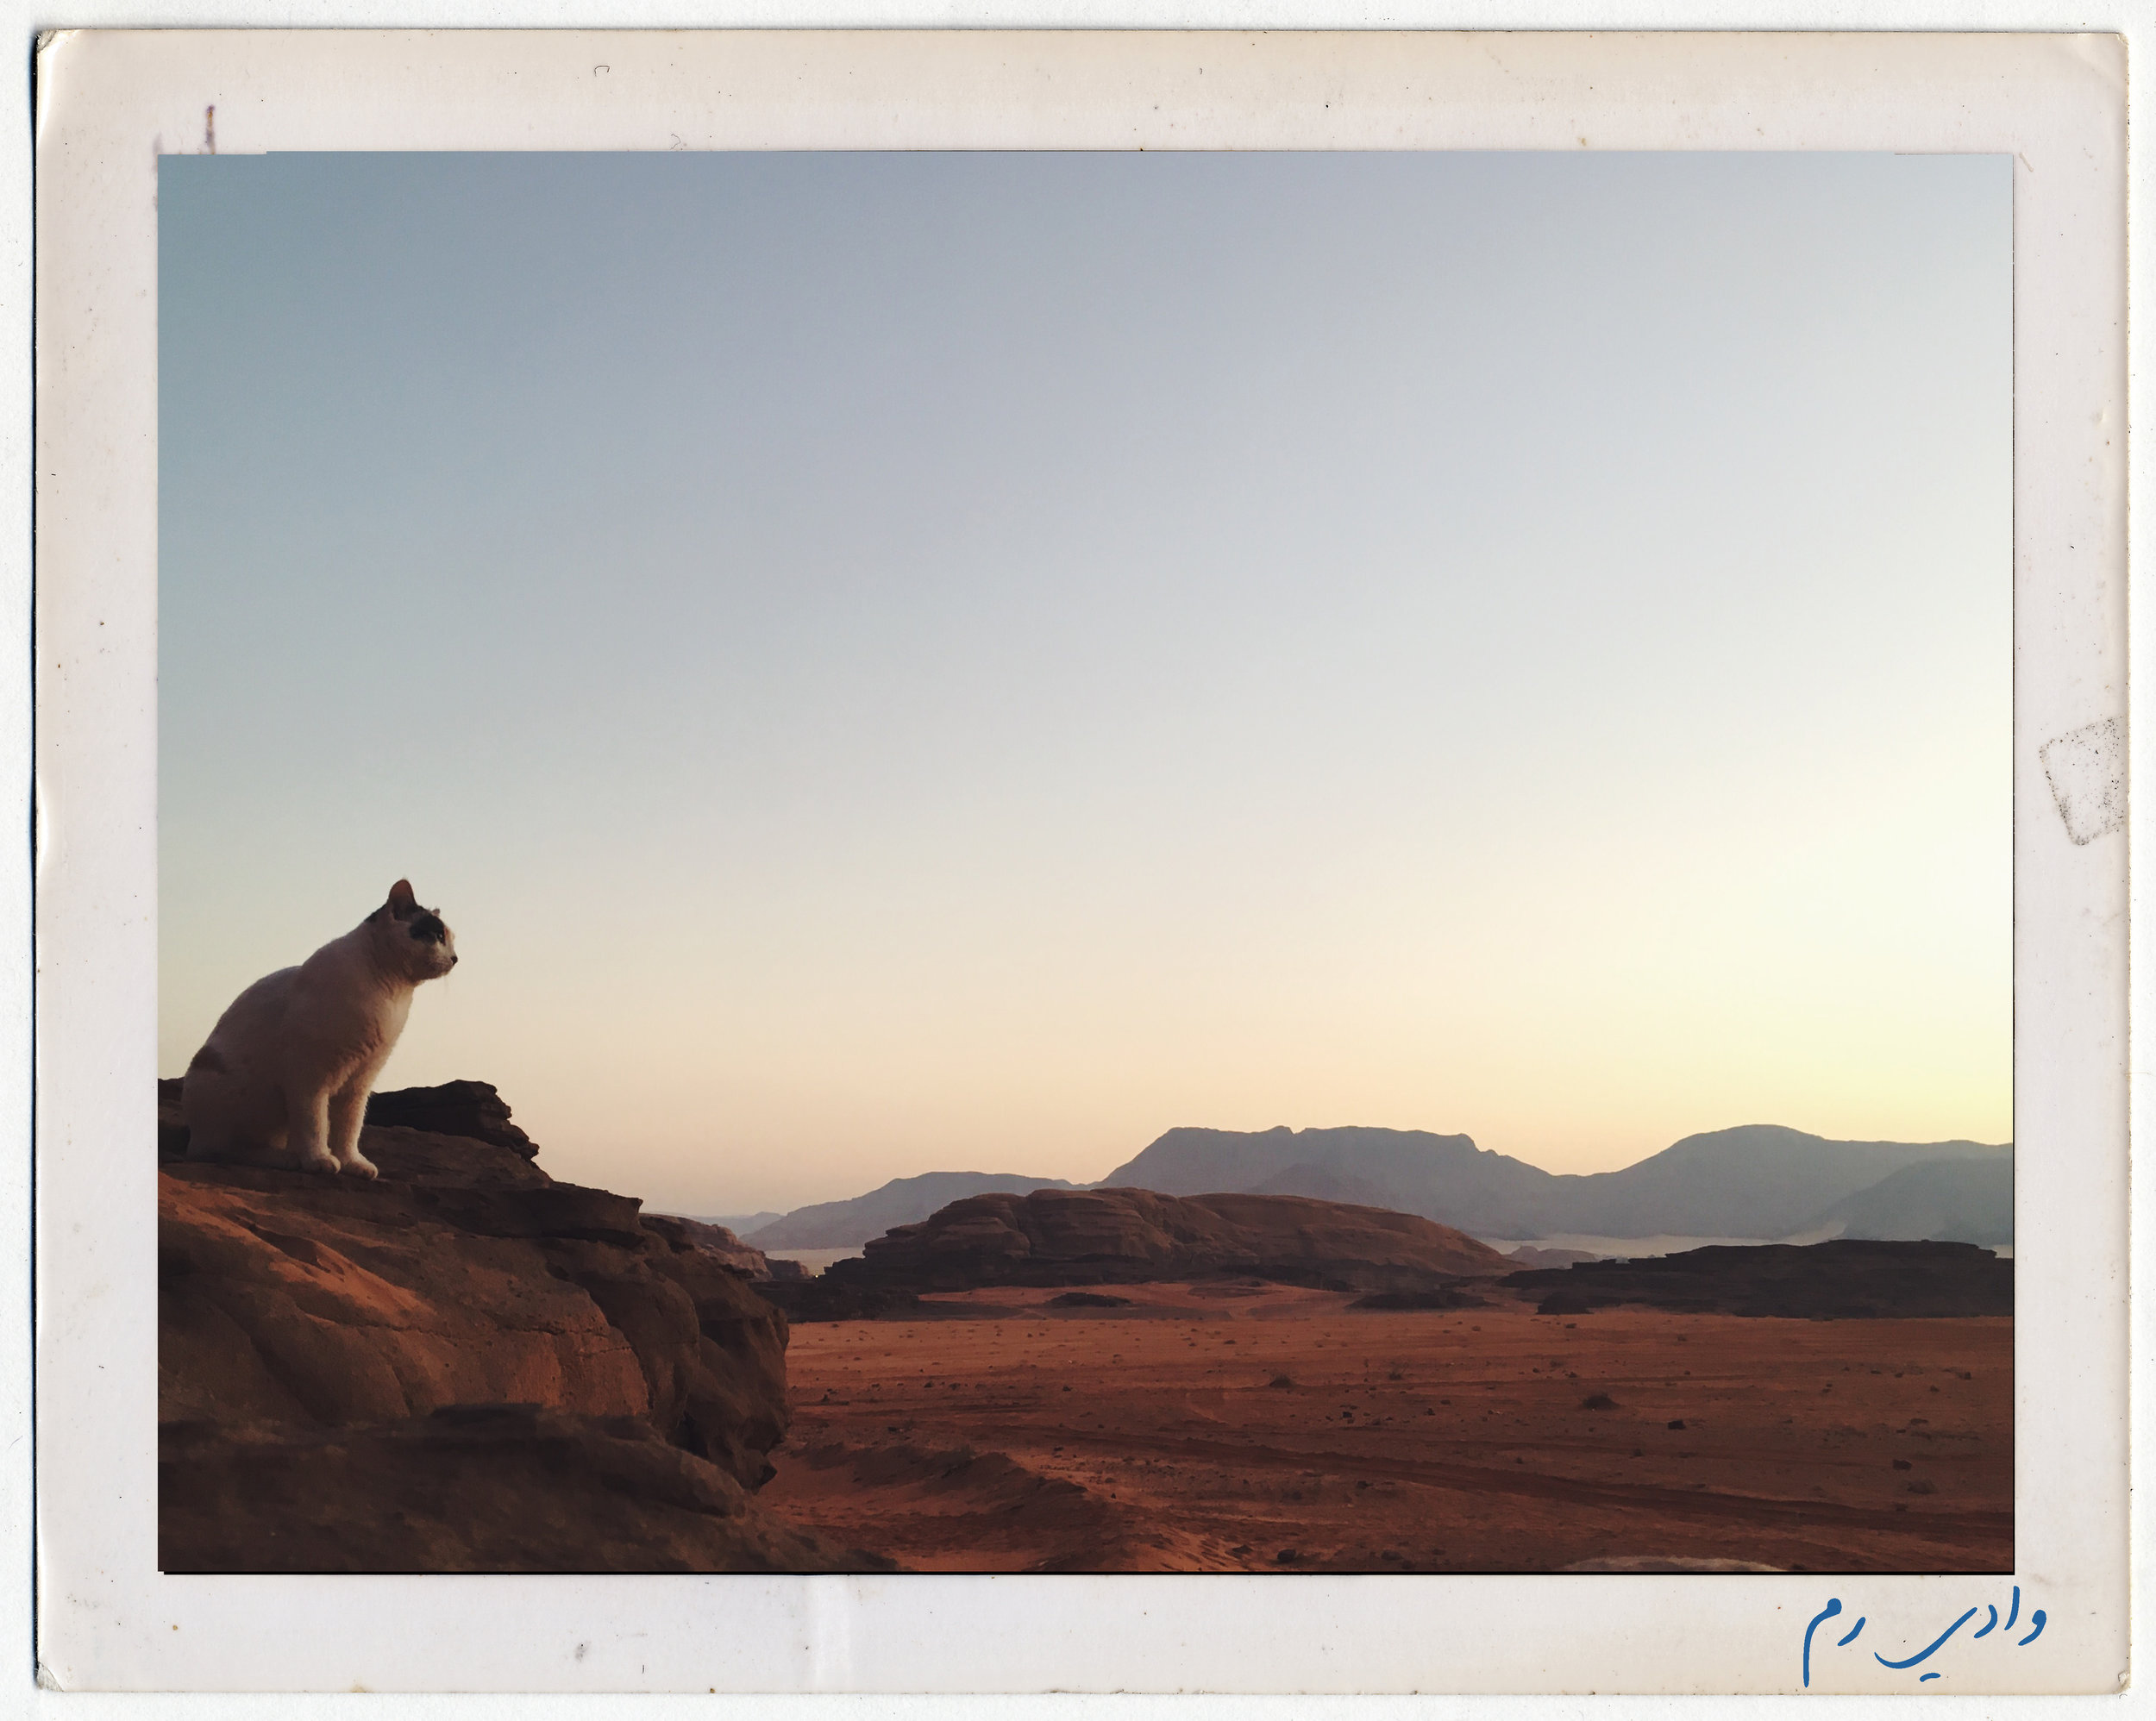 Wadi Rum was a truly otherworldly experience – in every direction you look, there's a stunning Mars-like landscape. No wonder so many movies have been filmed here! We woke up before the sun and made our way to a high point in the desert. We were joined by this cat, who watched the sunrise with us and then proceeded to model in the golden light of early morning. Photo credit: L. McGuire, Fall 2018